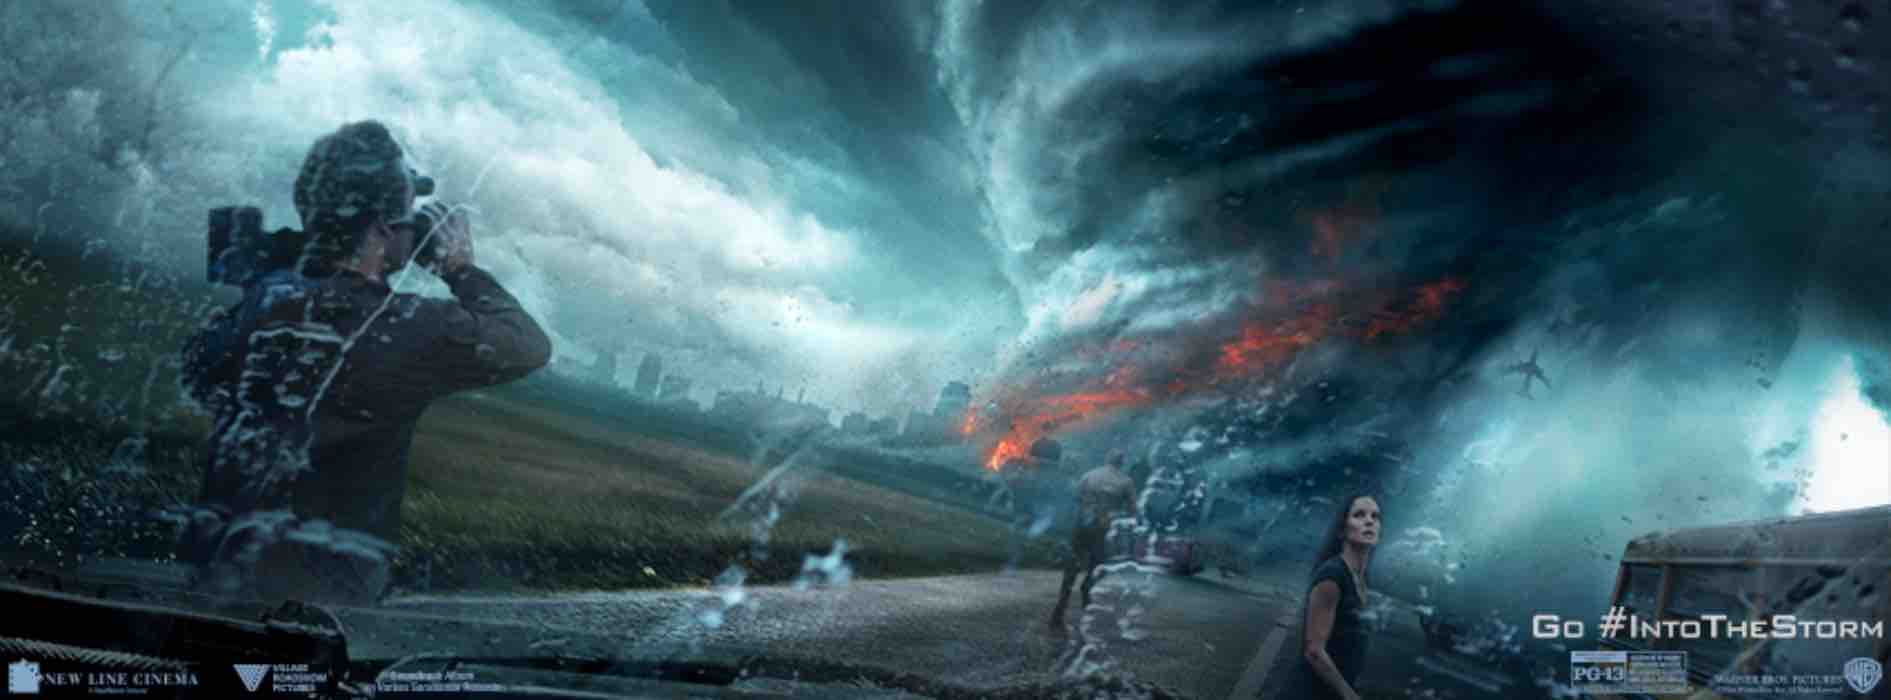 Italia 1 | Into the storm | info, trama, cast, trailer e curiosità sul film